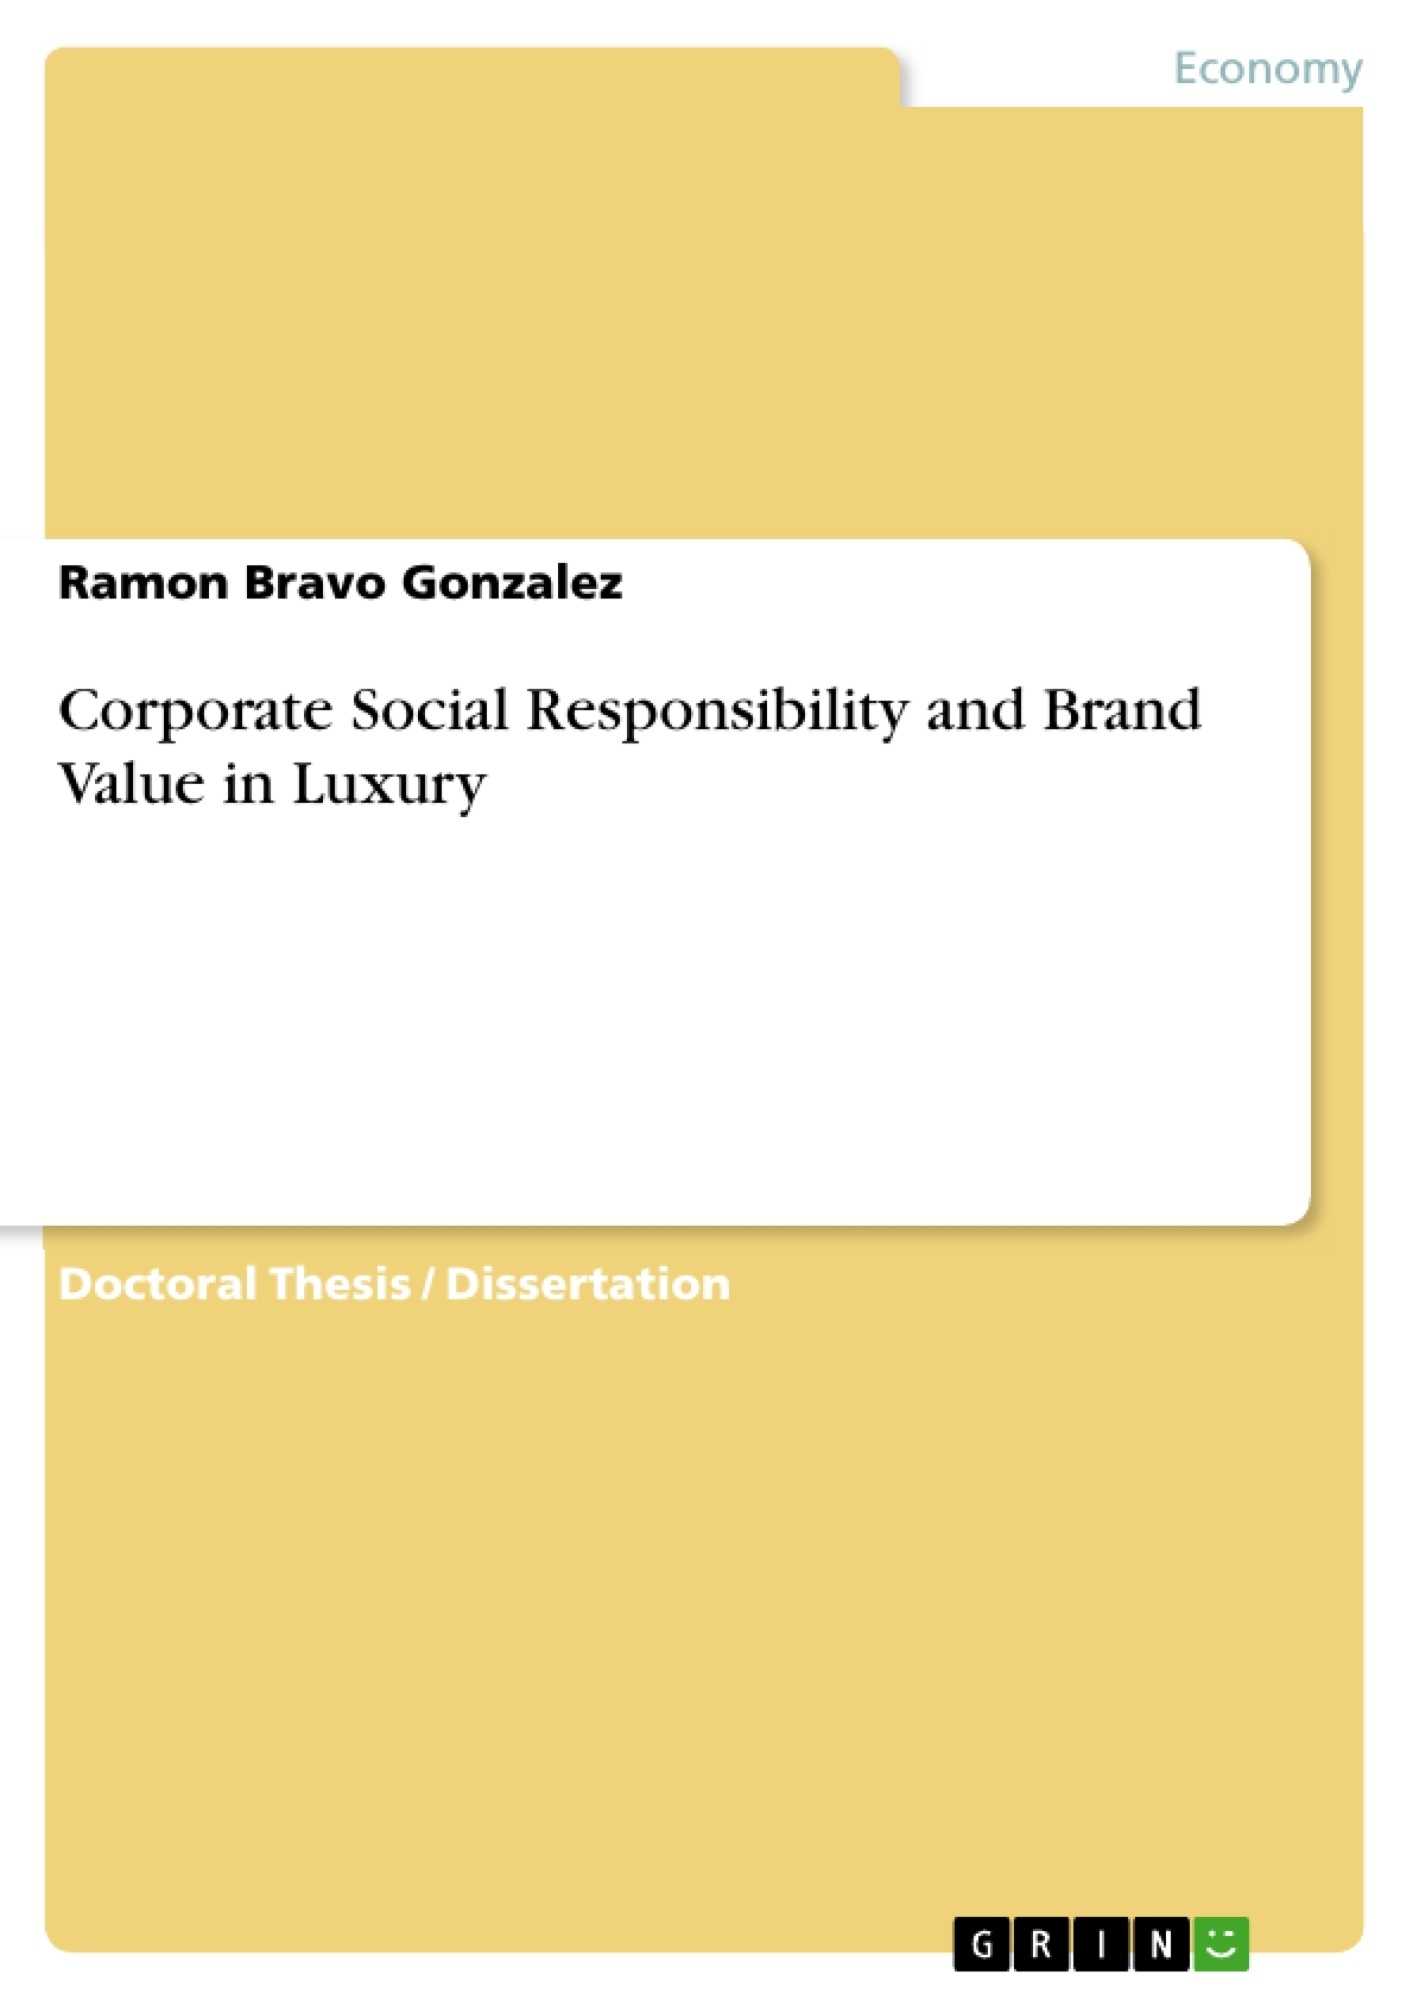 c73a0b0be1 Corporate Social Responsibility and Brand Value in Luxury